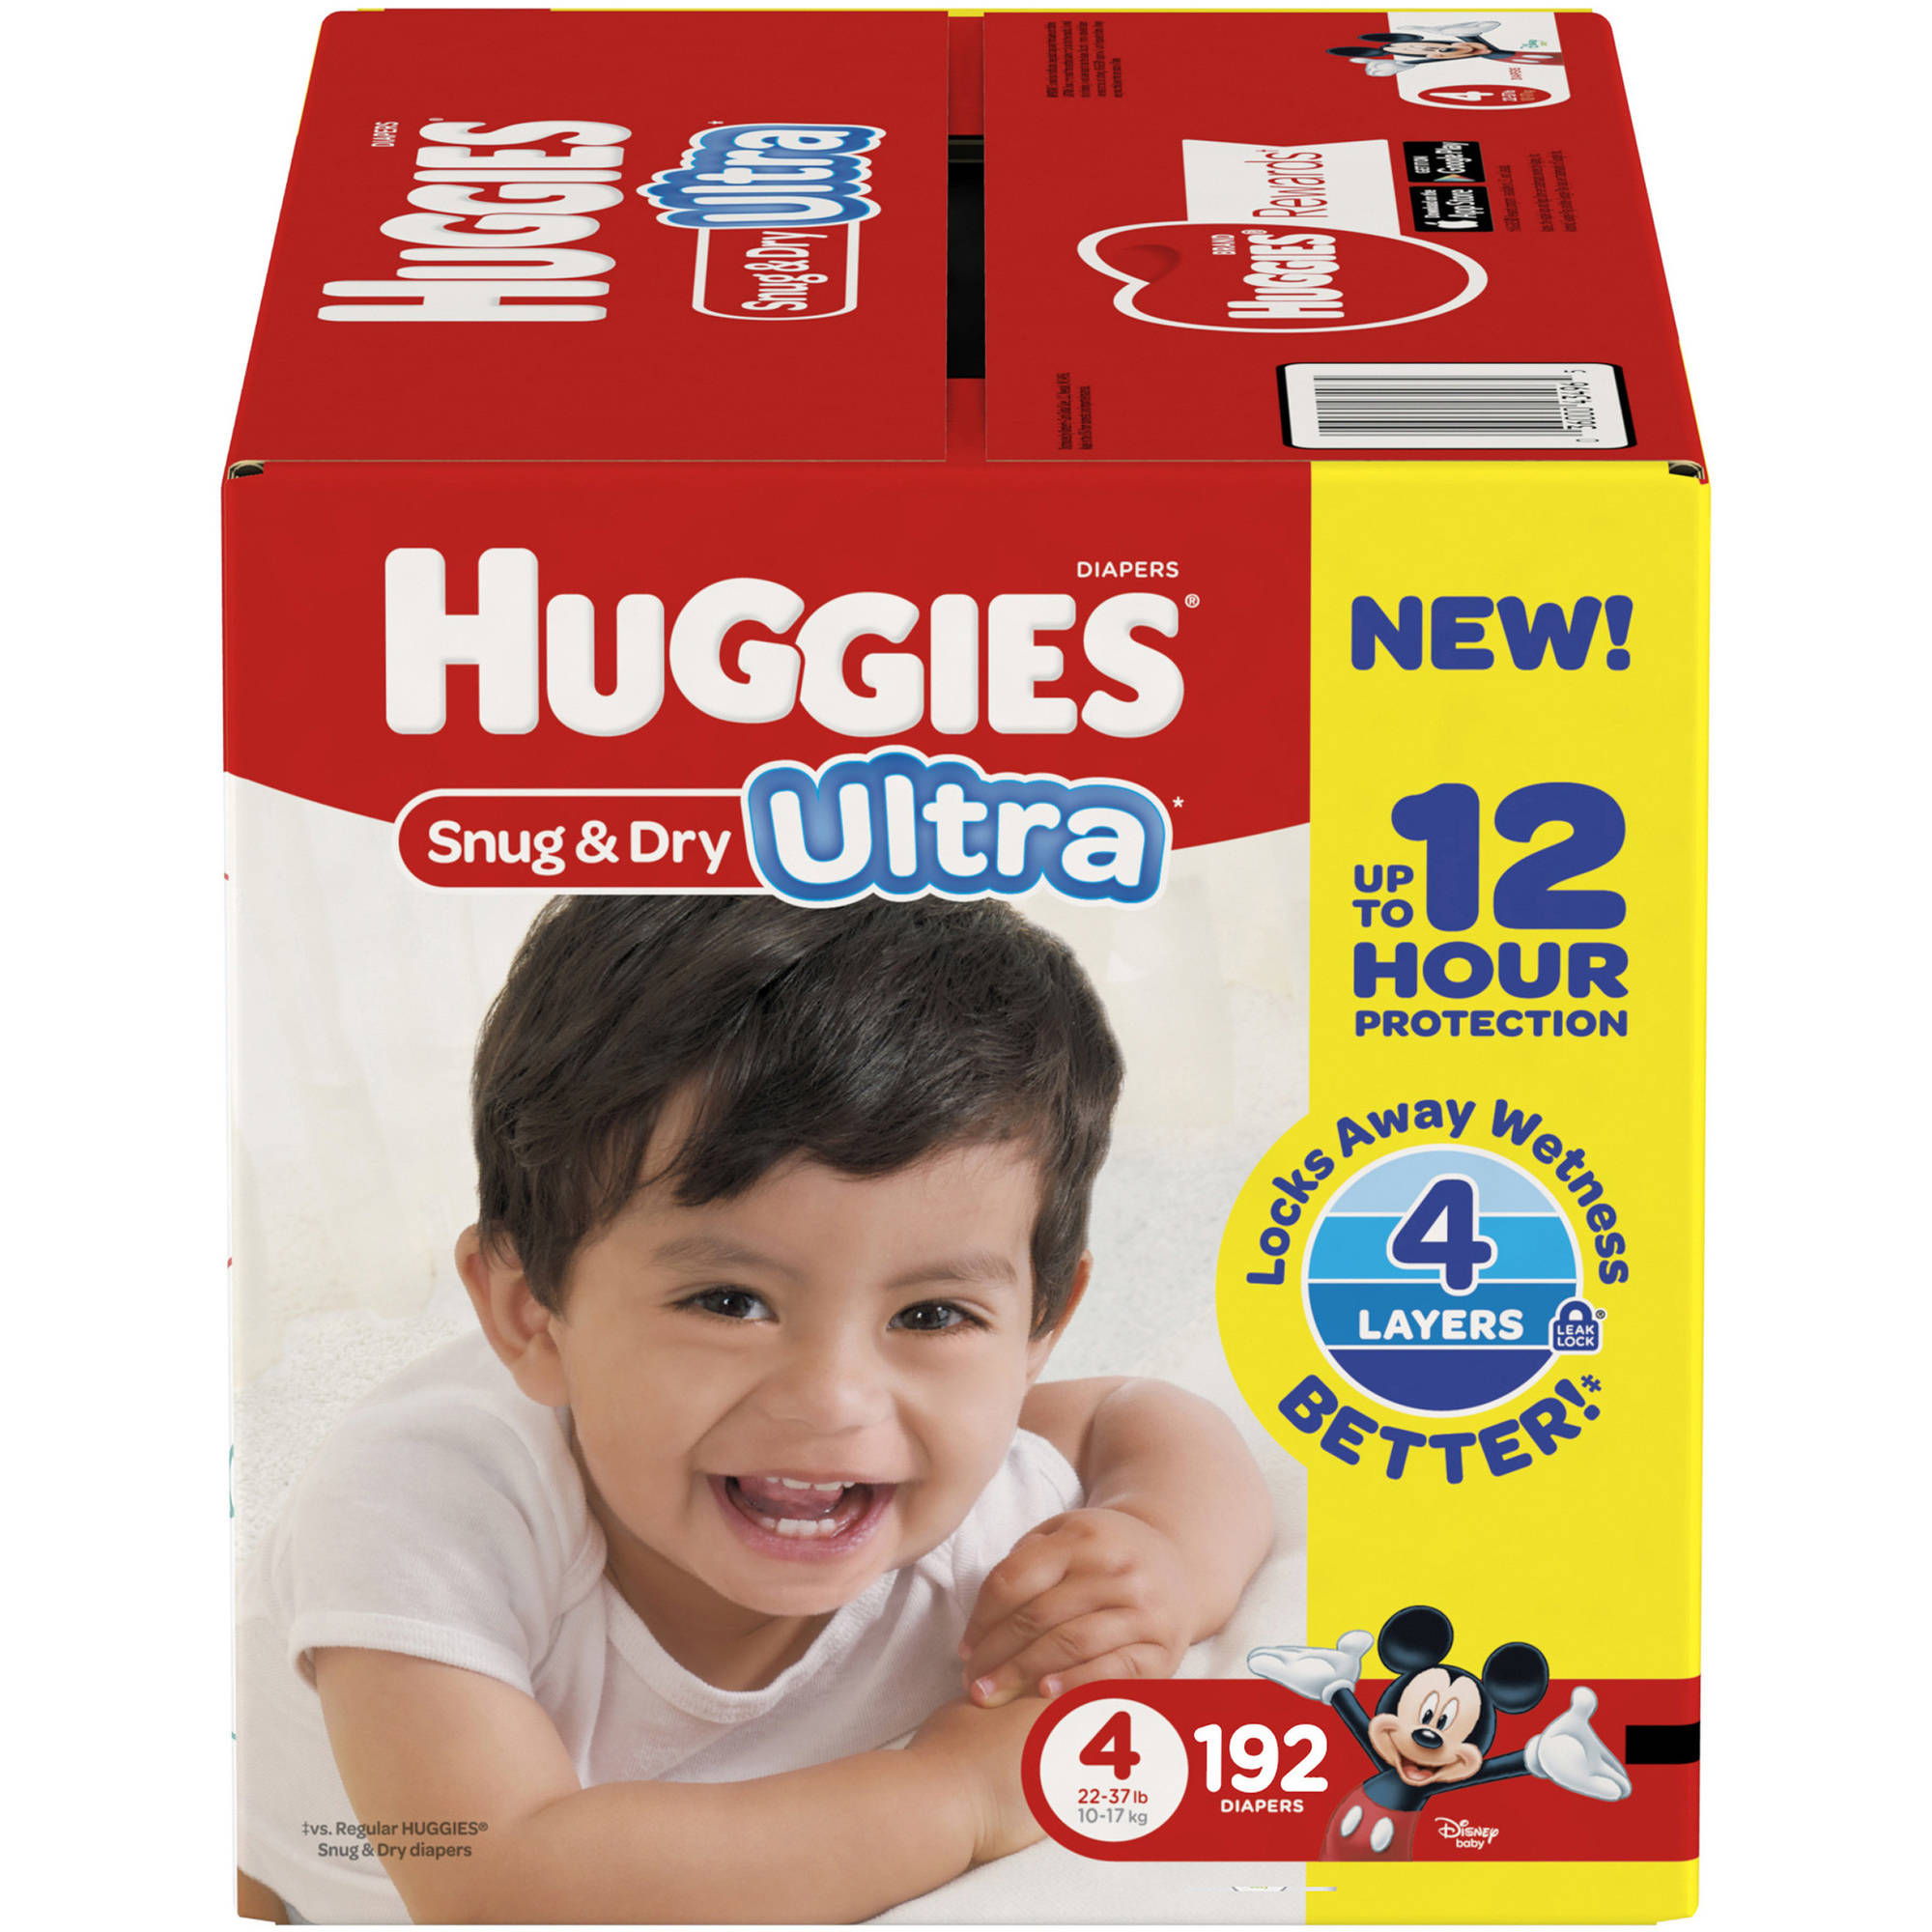 HUGGIES Snug & Dry Ultra, Size 4 (Choose Diaper Count)